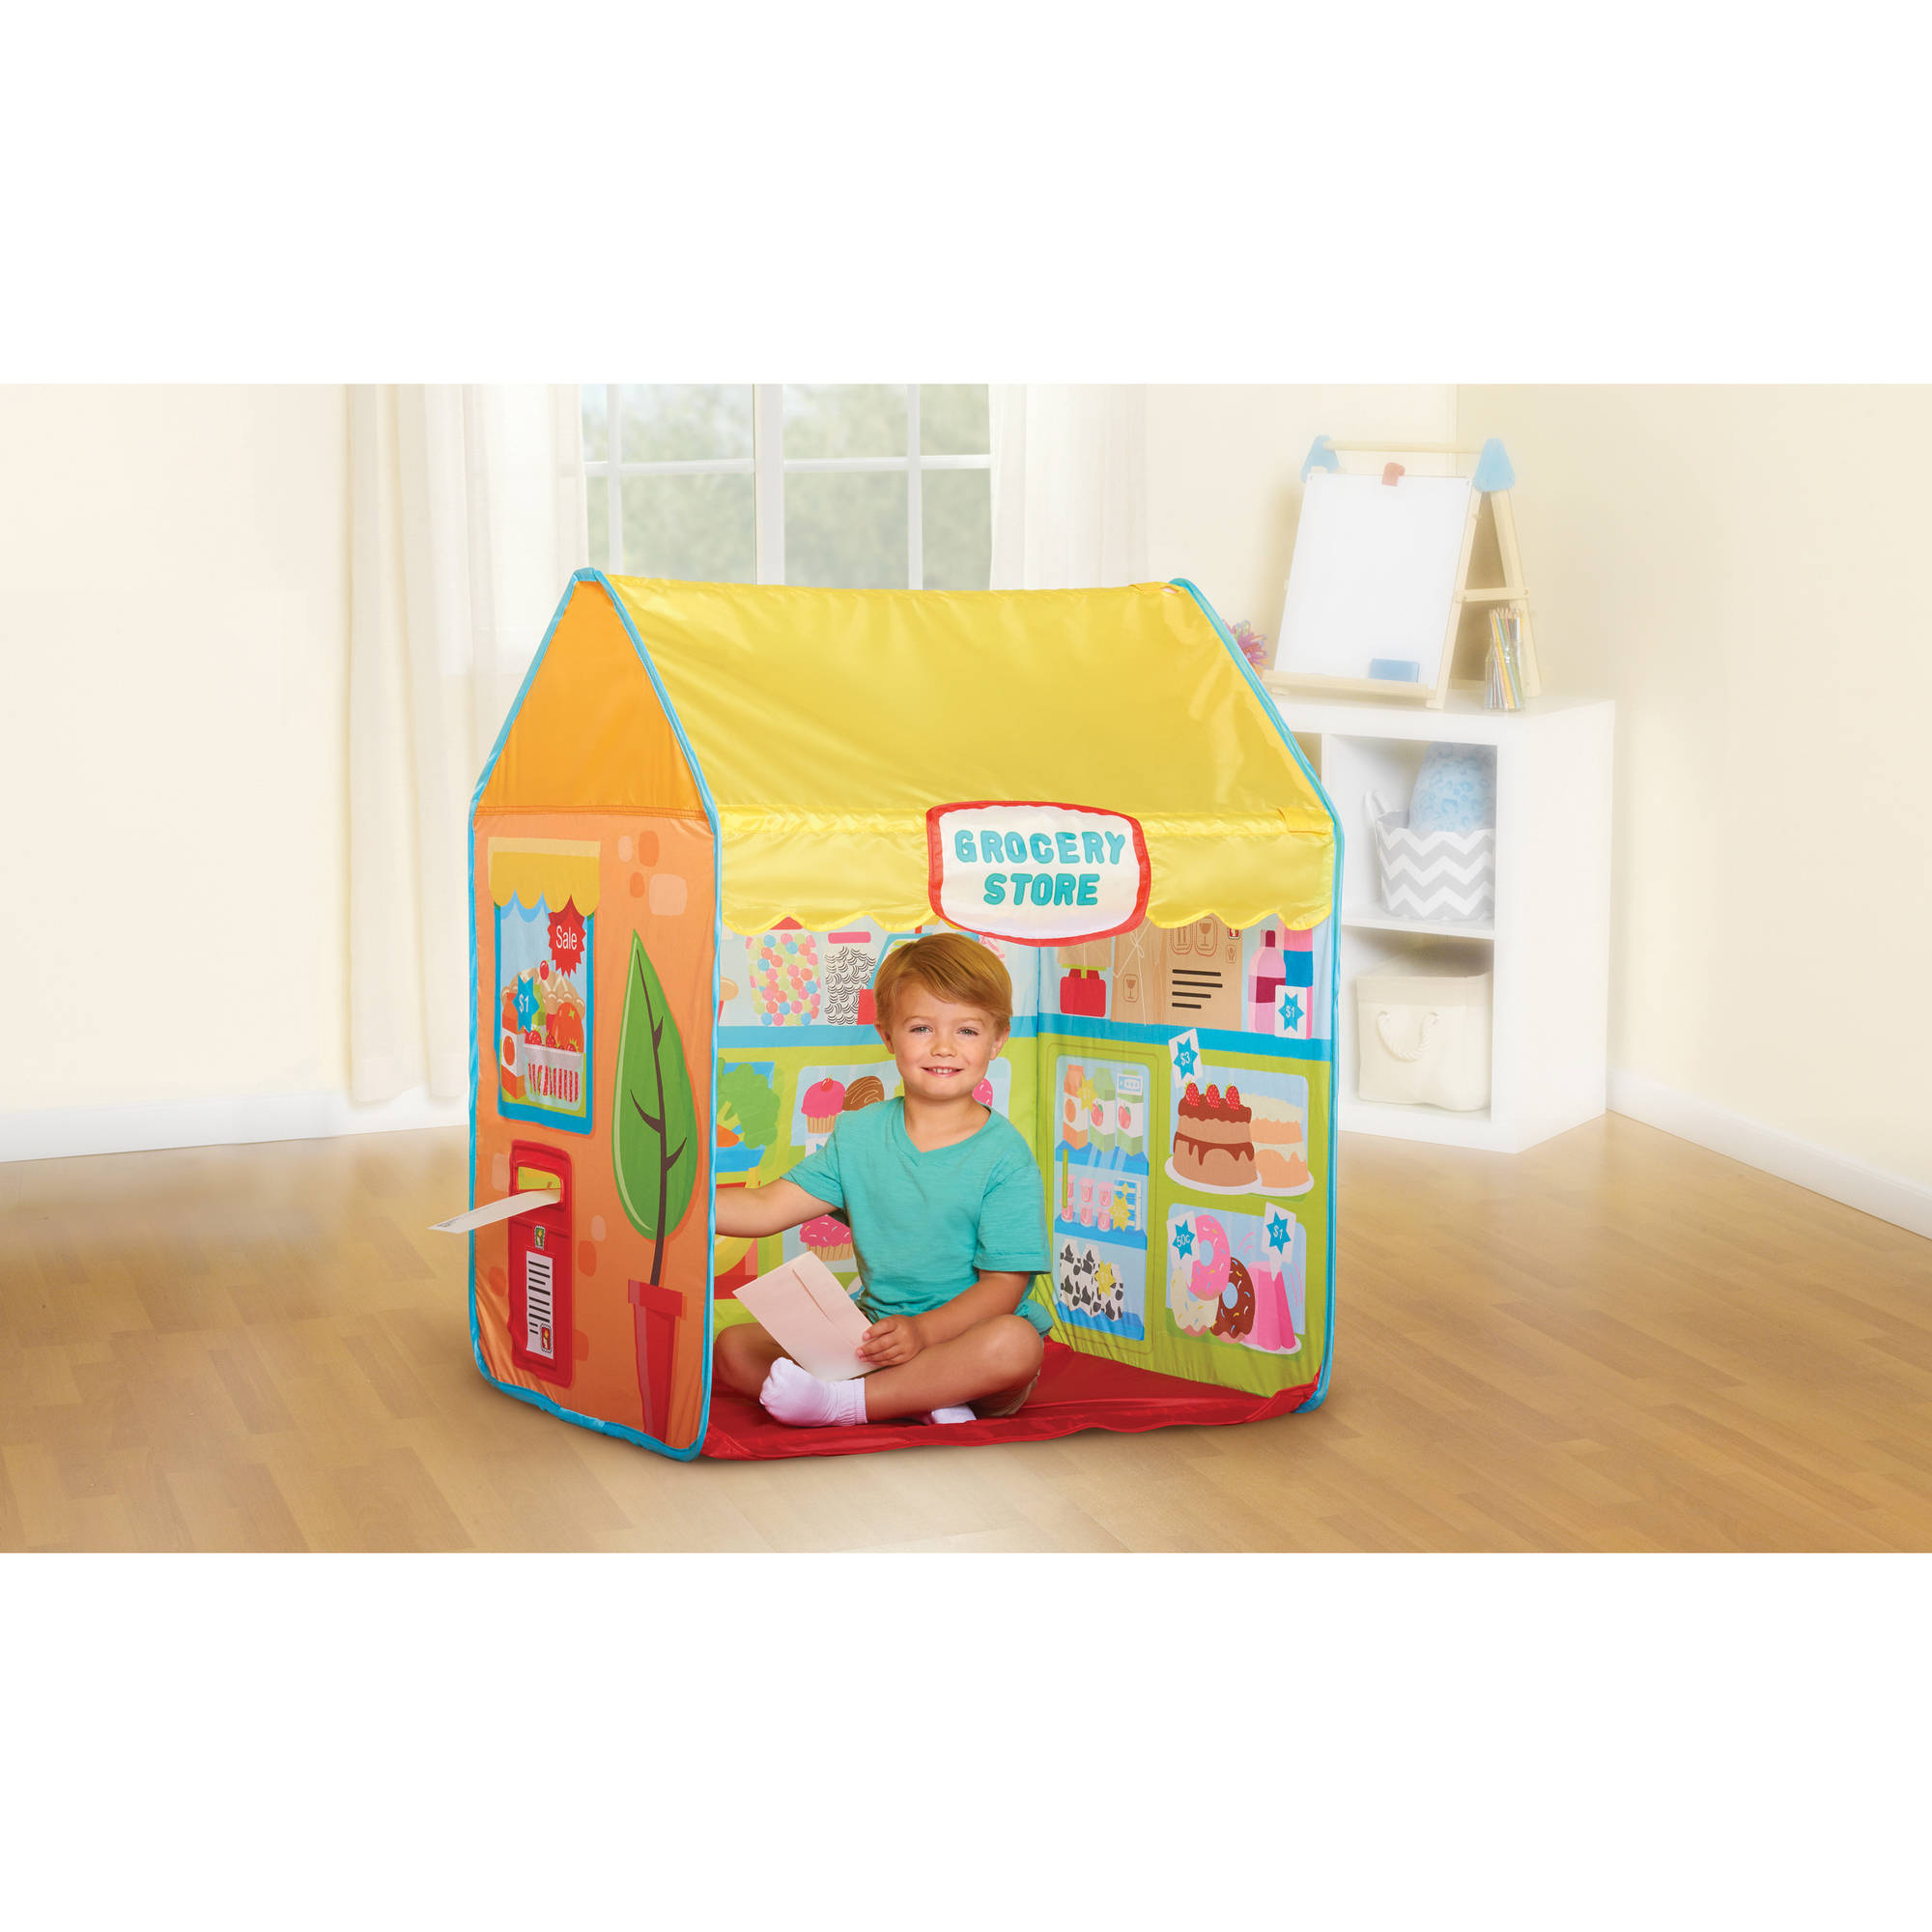 Grocery Store Pop Up Play Tent  sc 1 st  Walmart & Grocery Store Pop Up Play Tent - Walmart.com